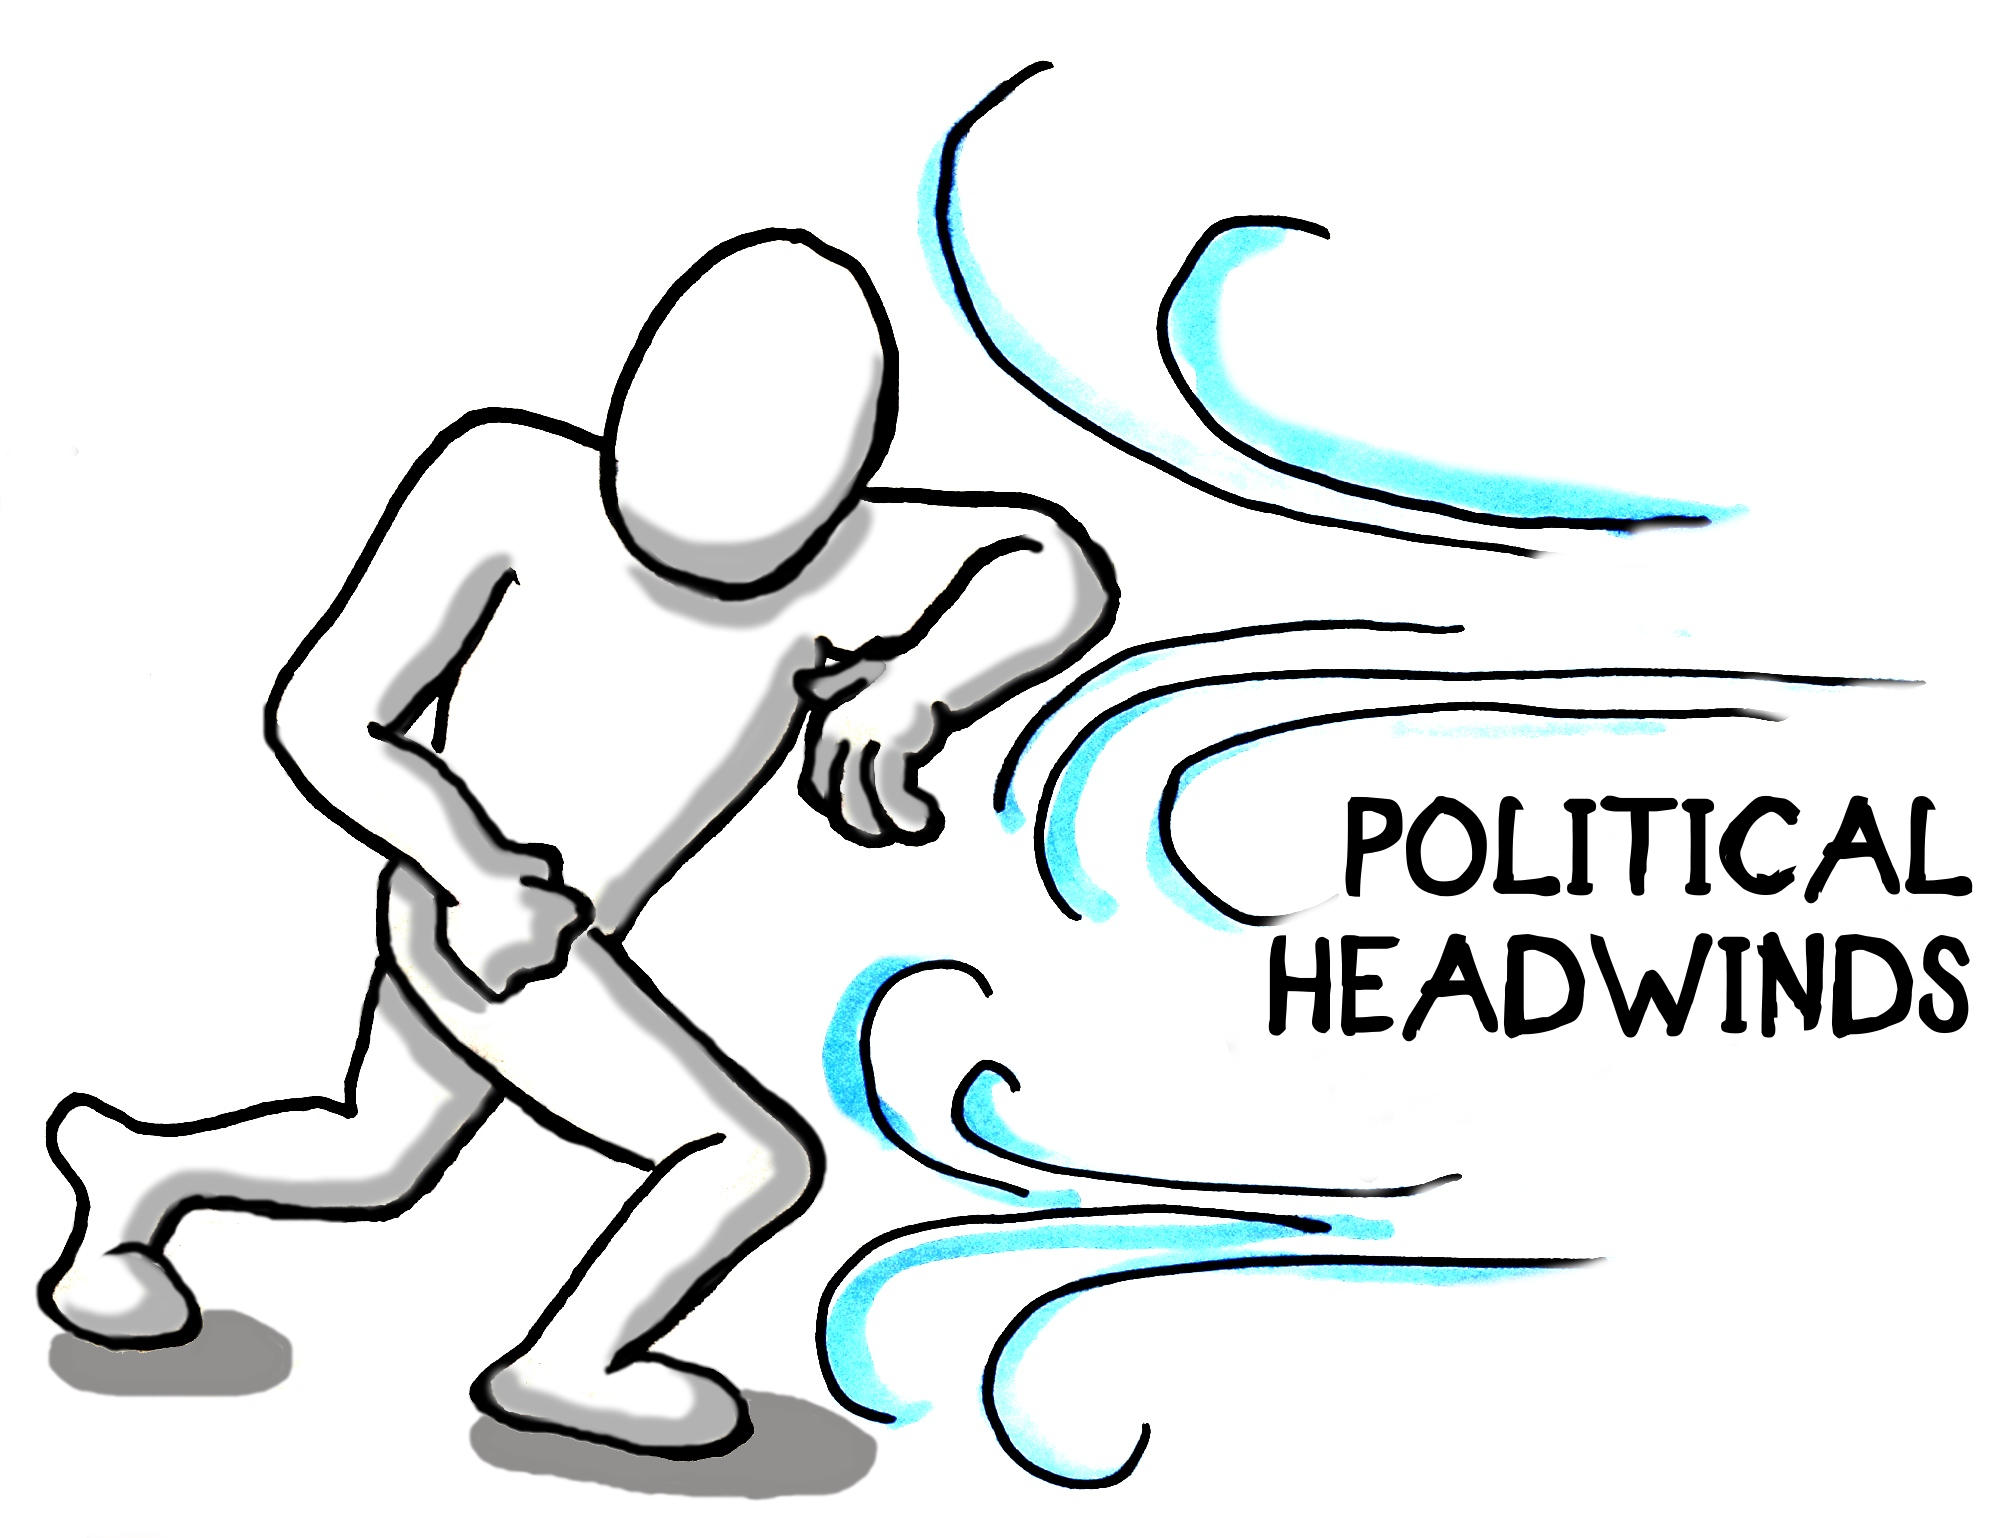 Political Headwinds